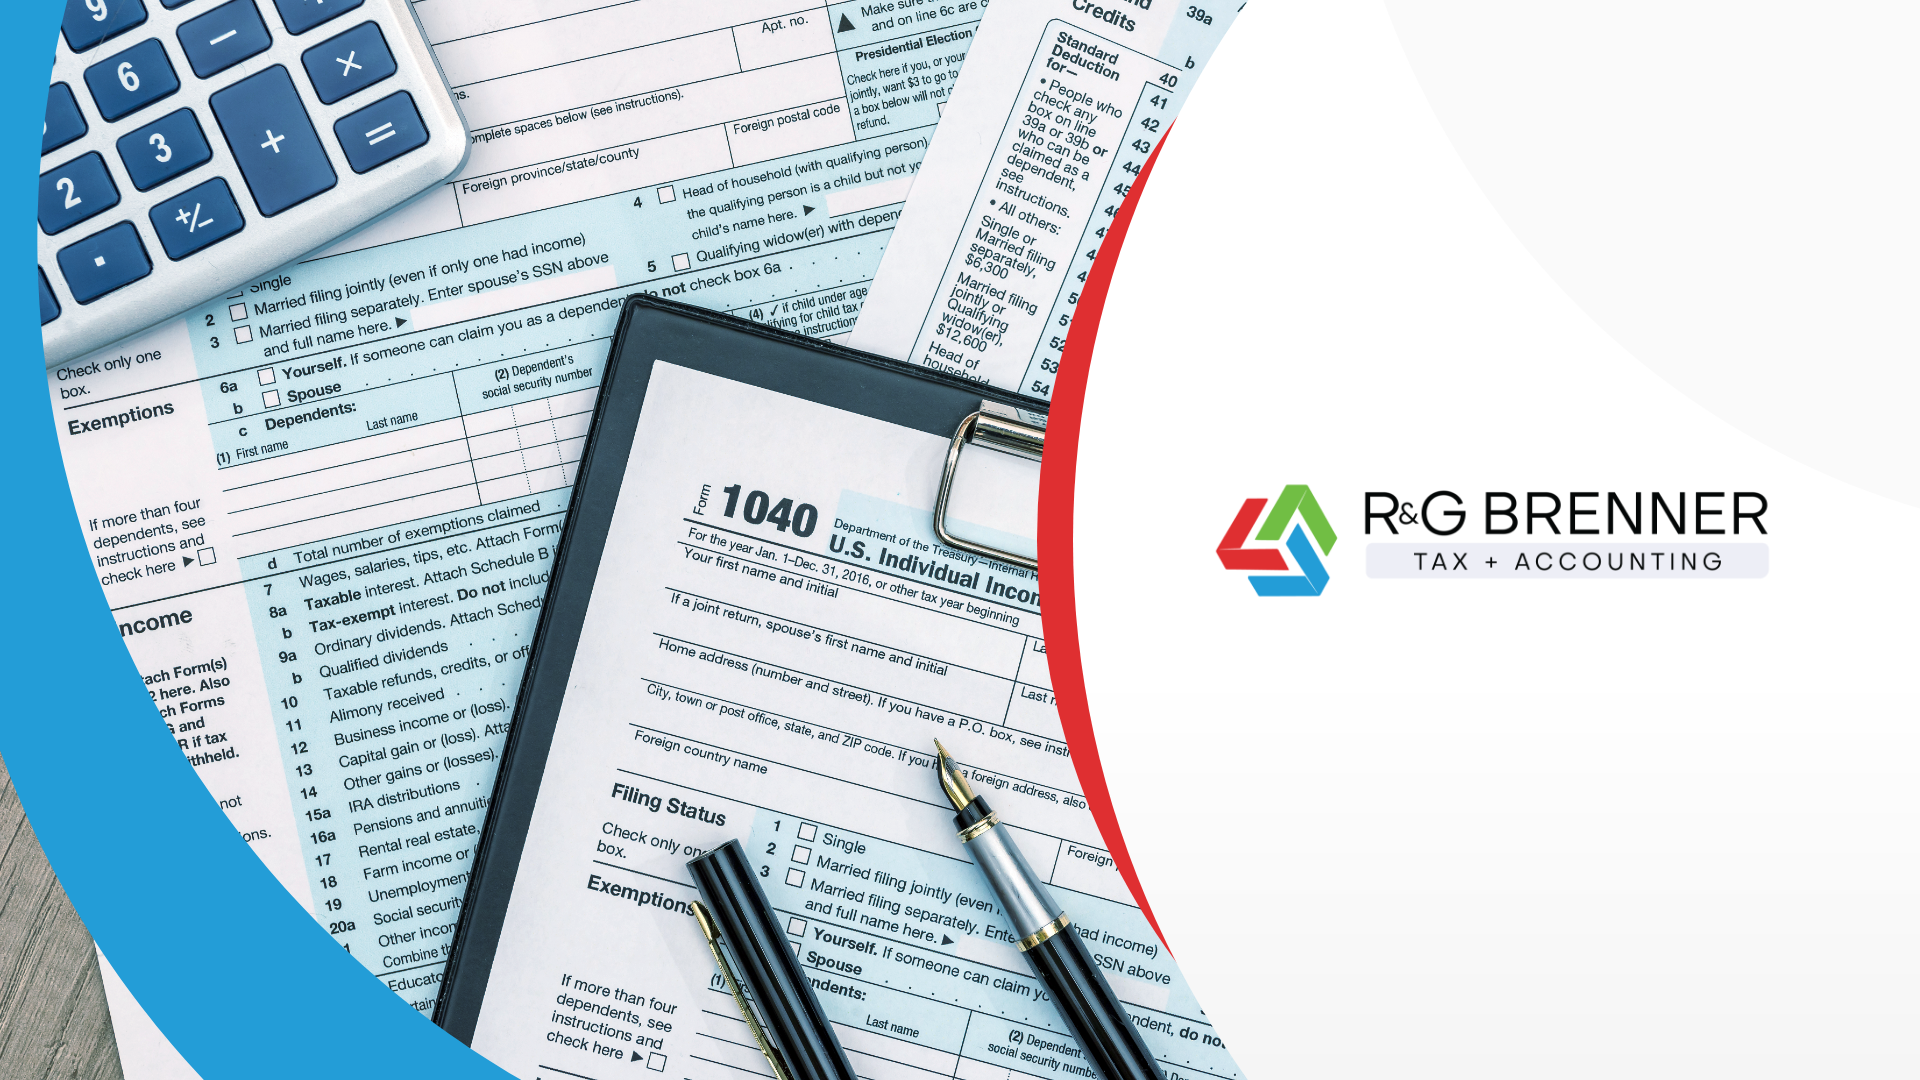 Image of 1040 tax form and other tax documents.